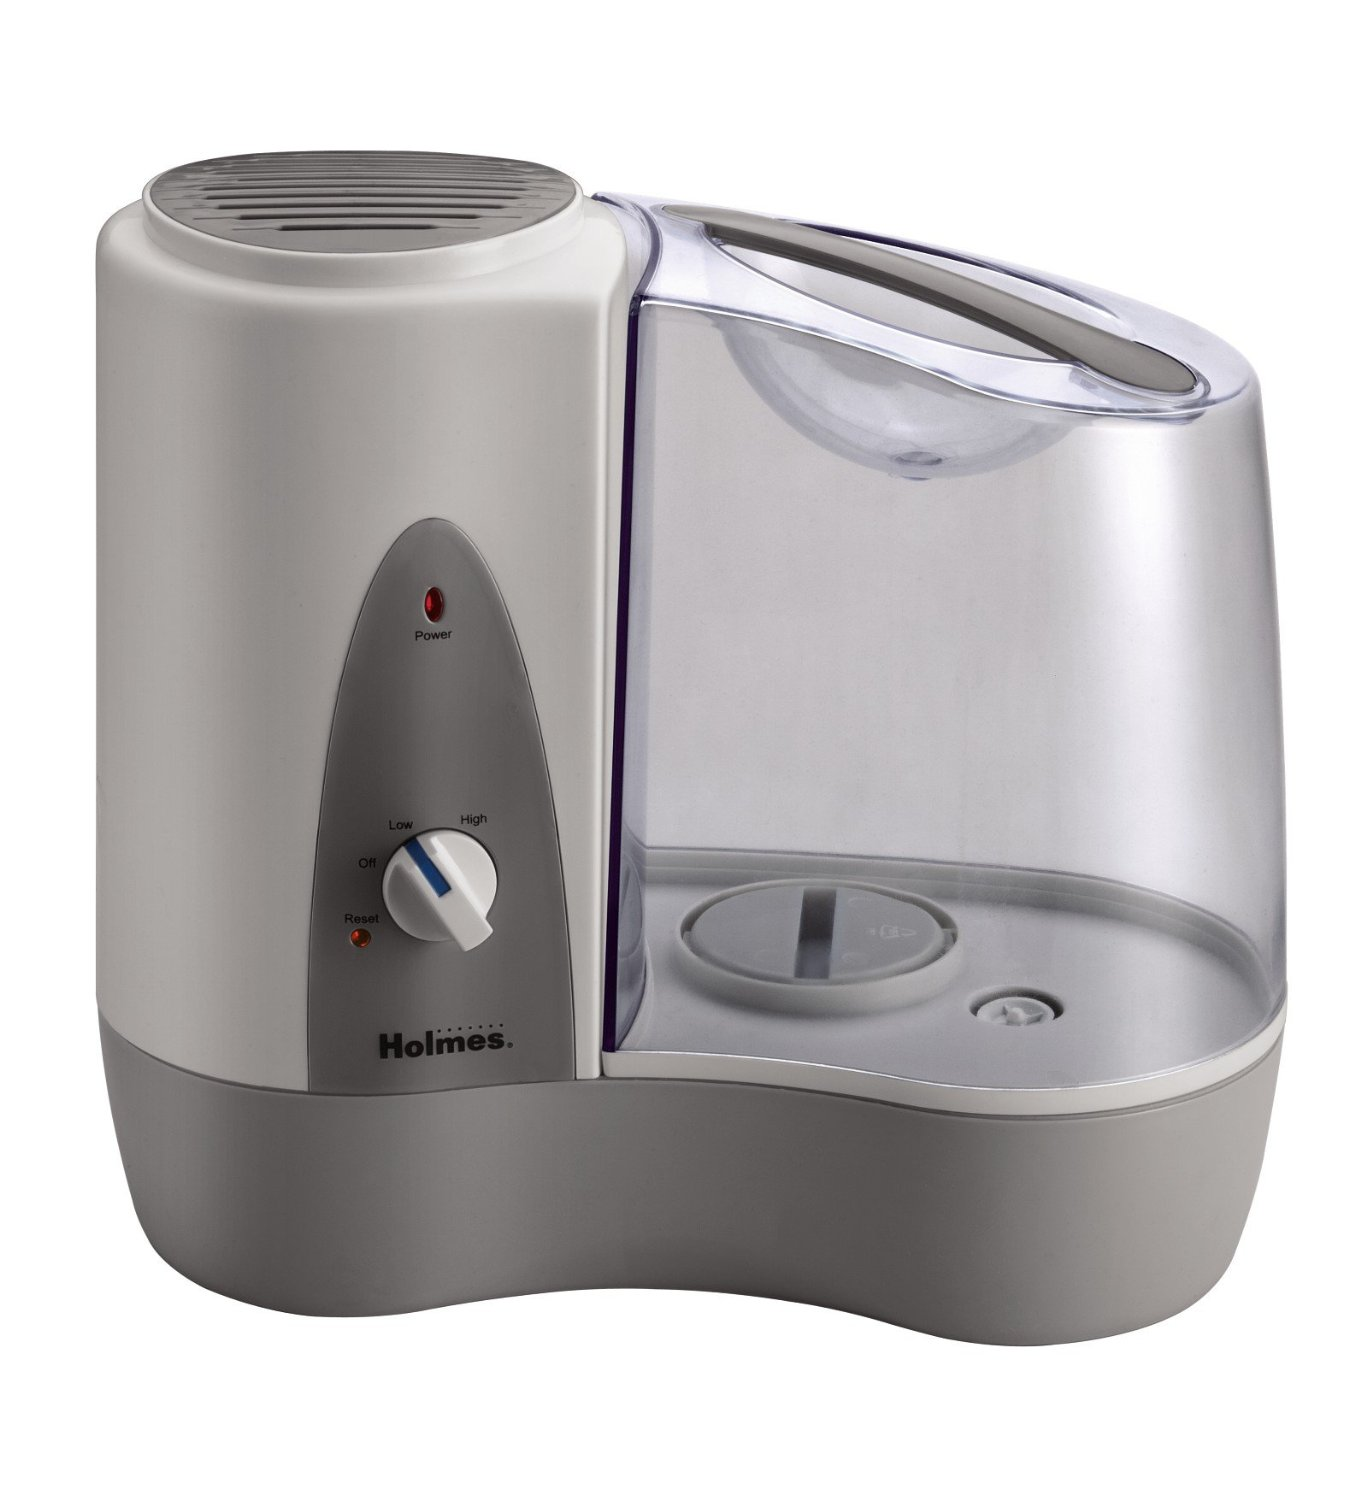 Holmes Warm Mist Filter Free Humidifier for Small Rooms HWM6000 NUM #47475C